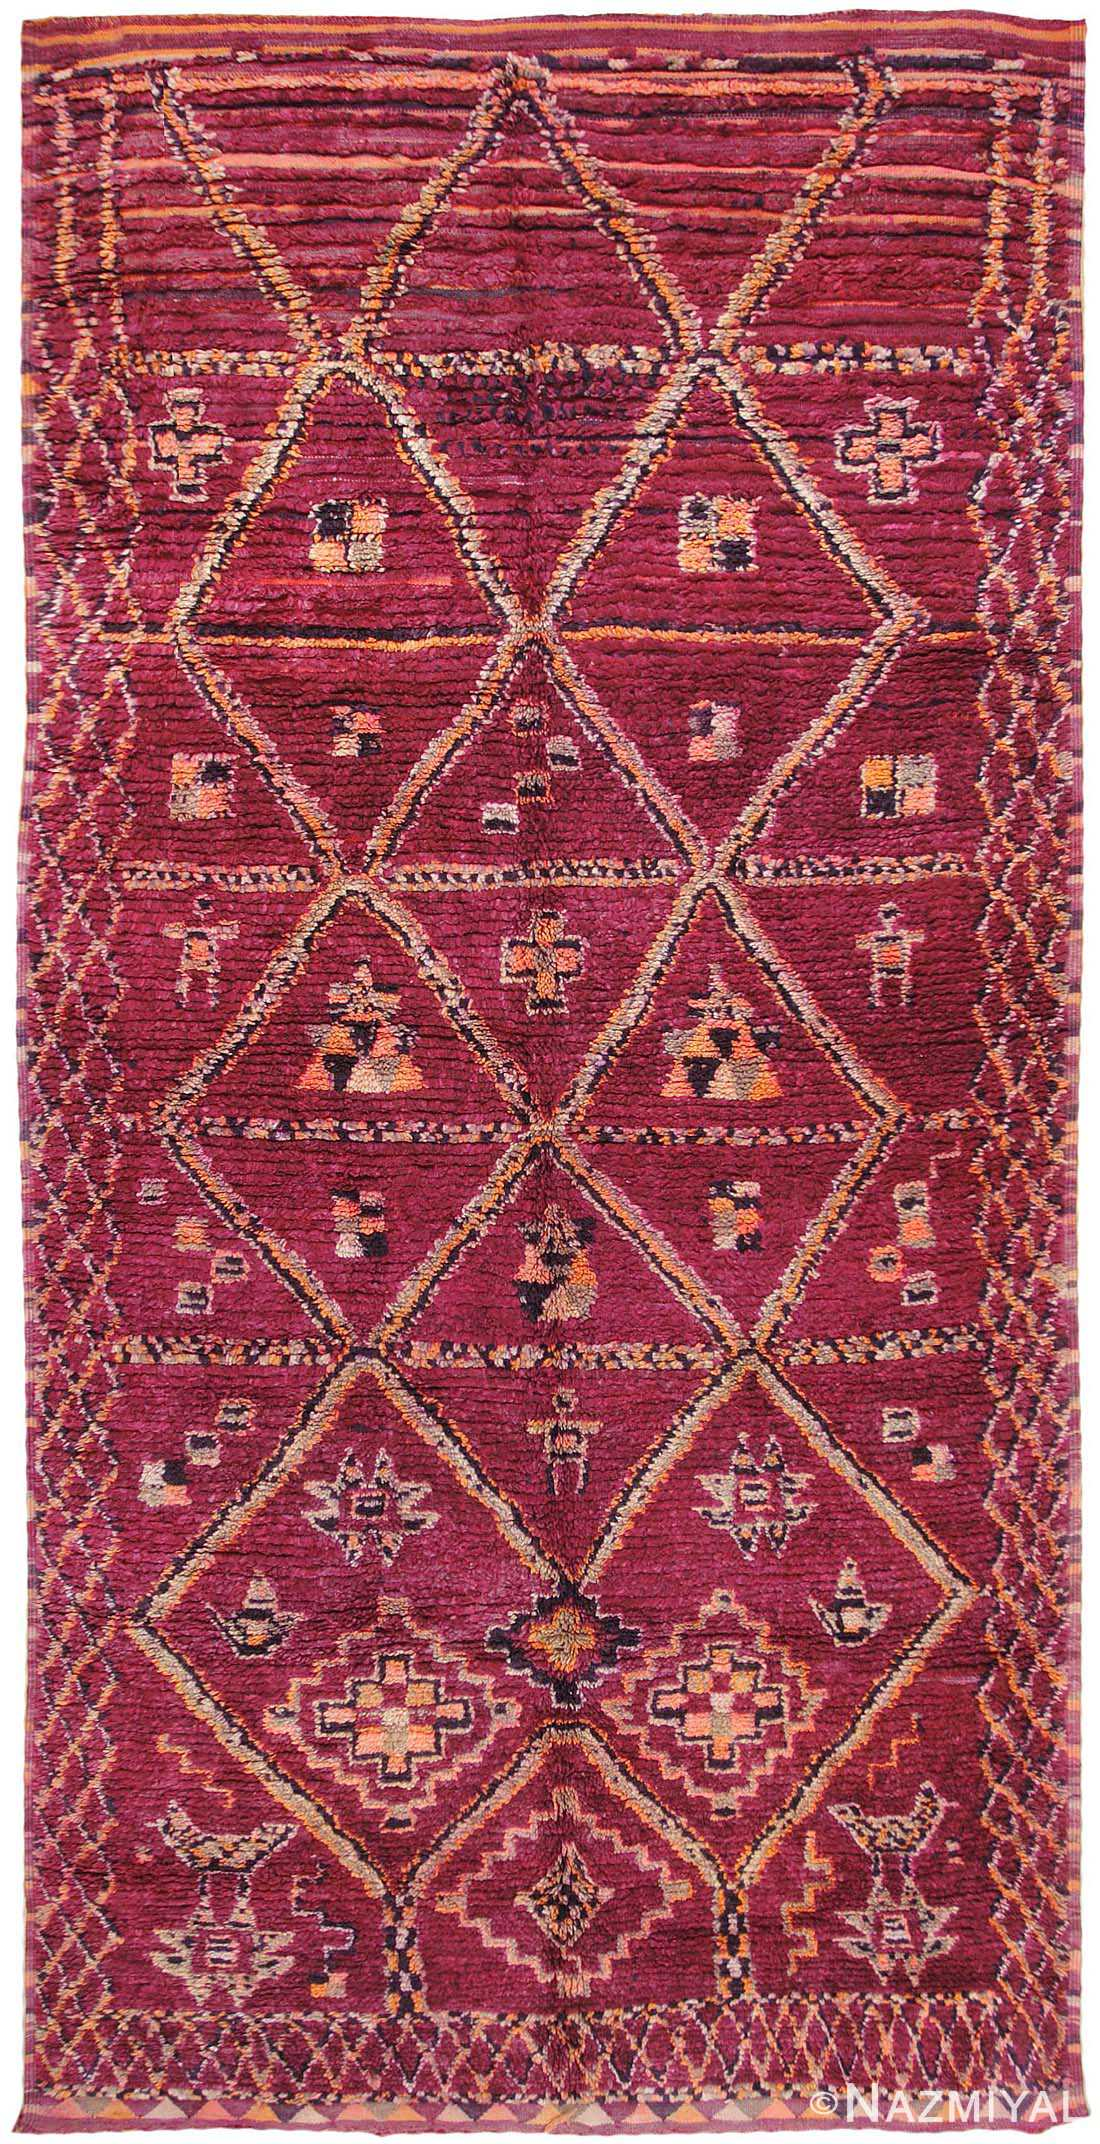 Vintage Moroccan Oriental Rugs 44464 Nazmiyal Collection